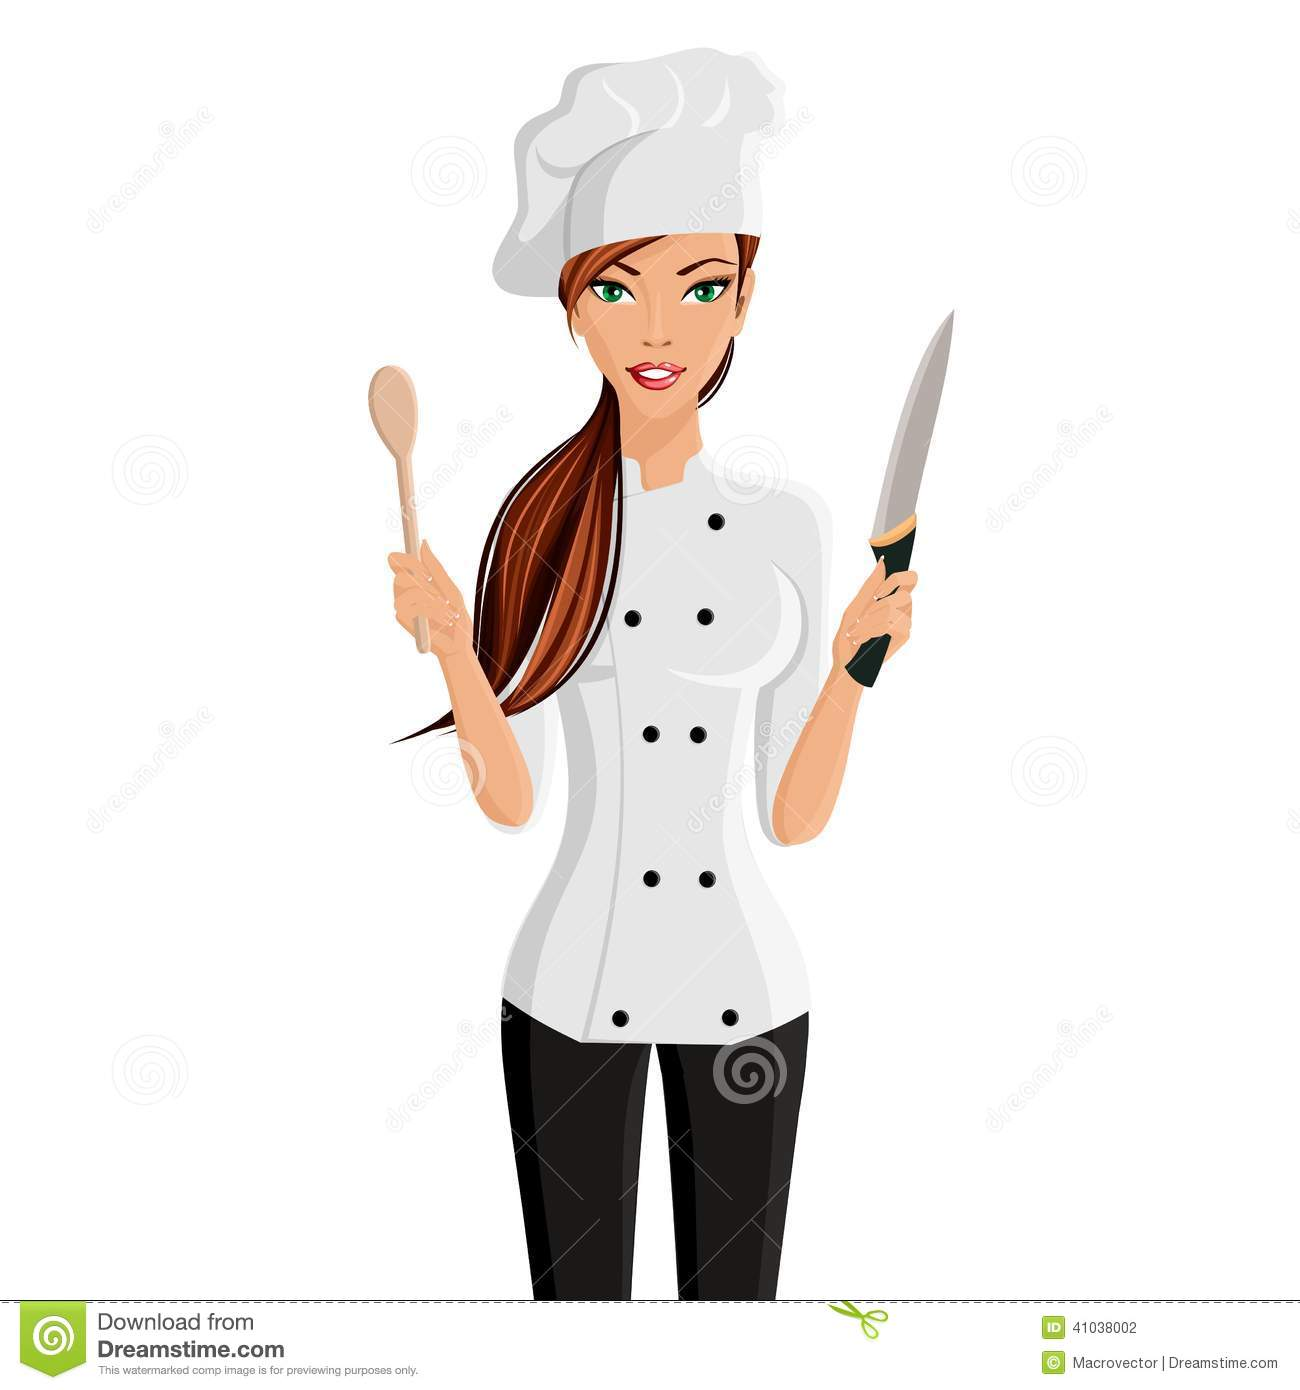 Woman Chef Portrait Stock Vector   Image  41038002